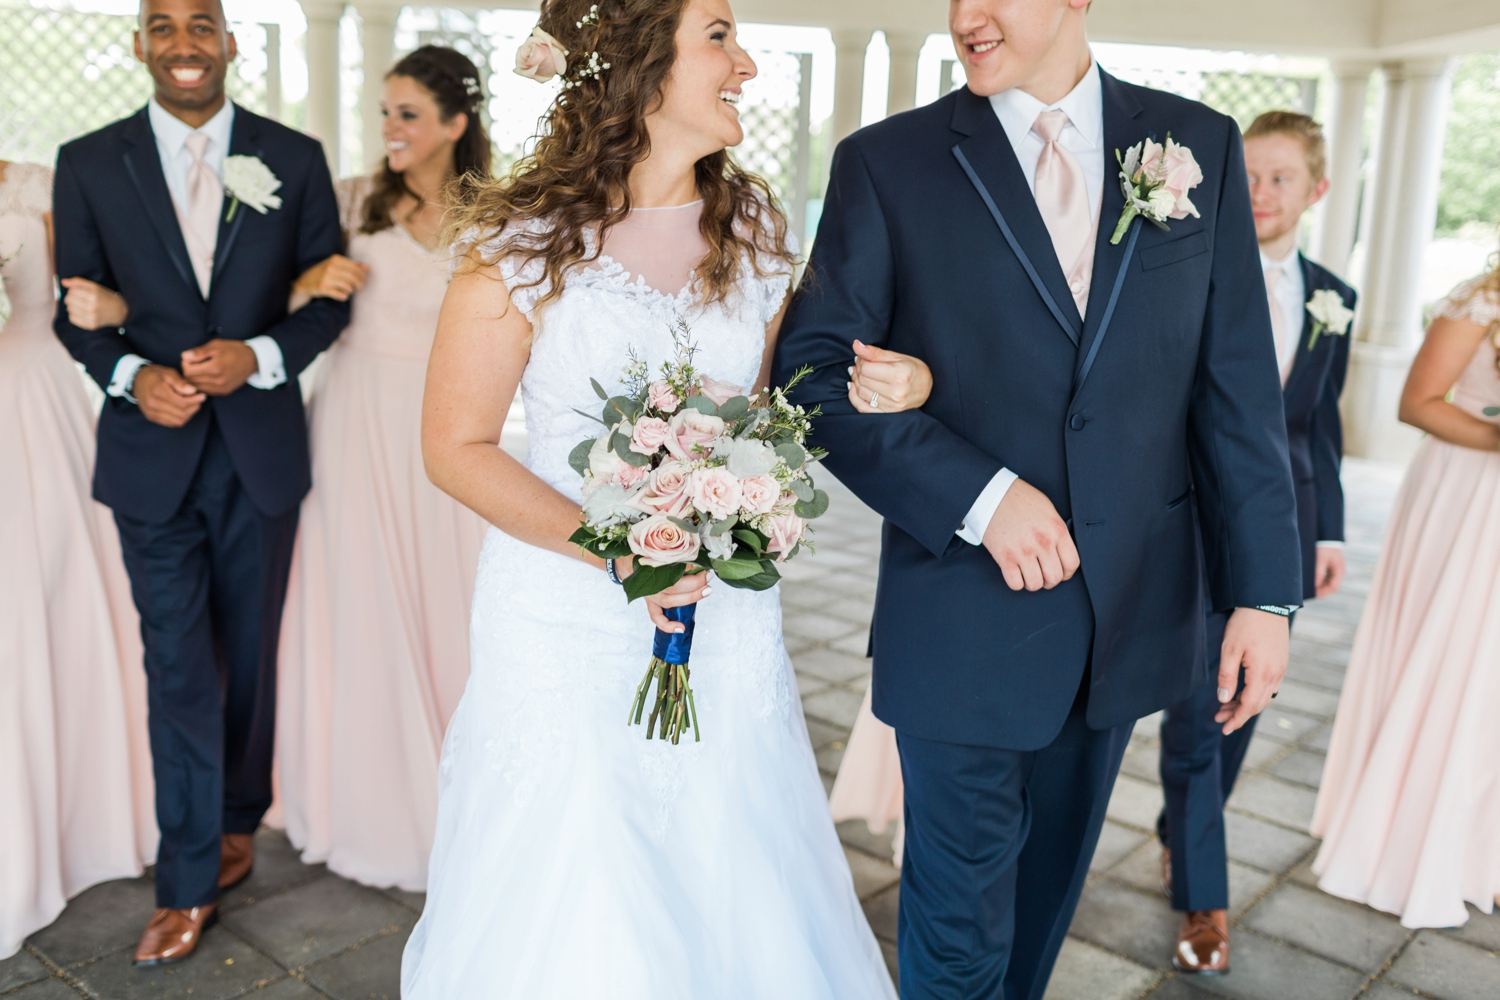 Community_Life_Center_Indianapolis_Indiana_Wedding_Photographer_Chloe_Luka_Photography_6913.jpg